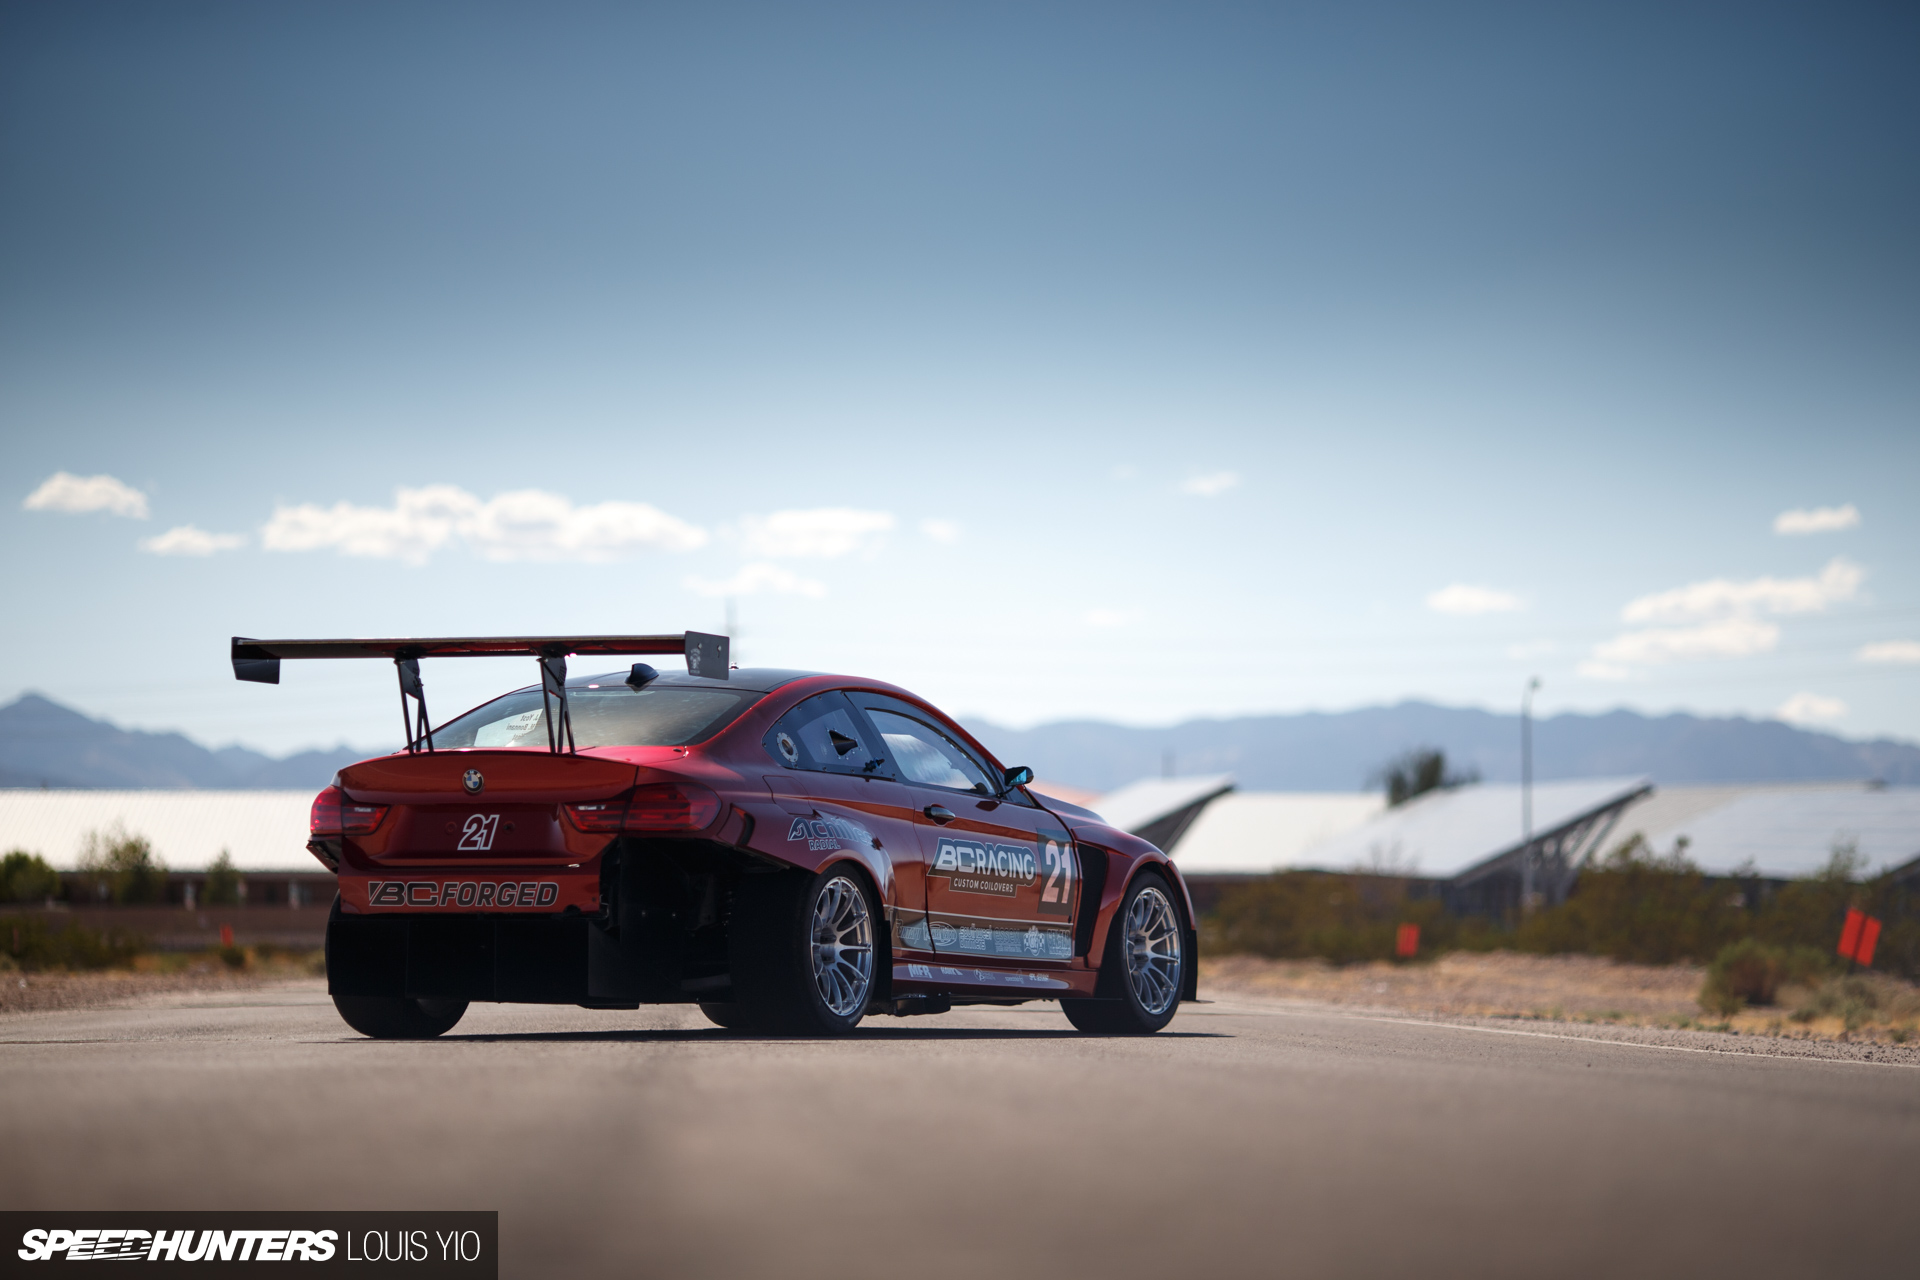 Cool Runnings Building The Ultimate Endurance Bmw M4